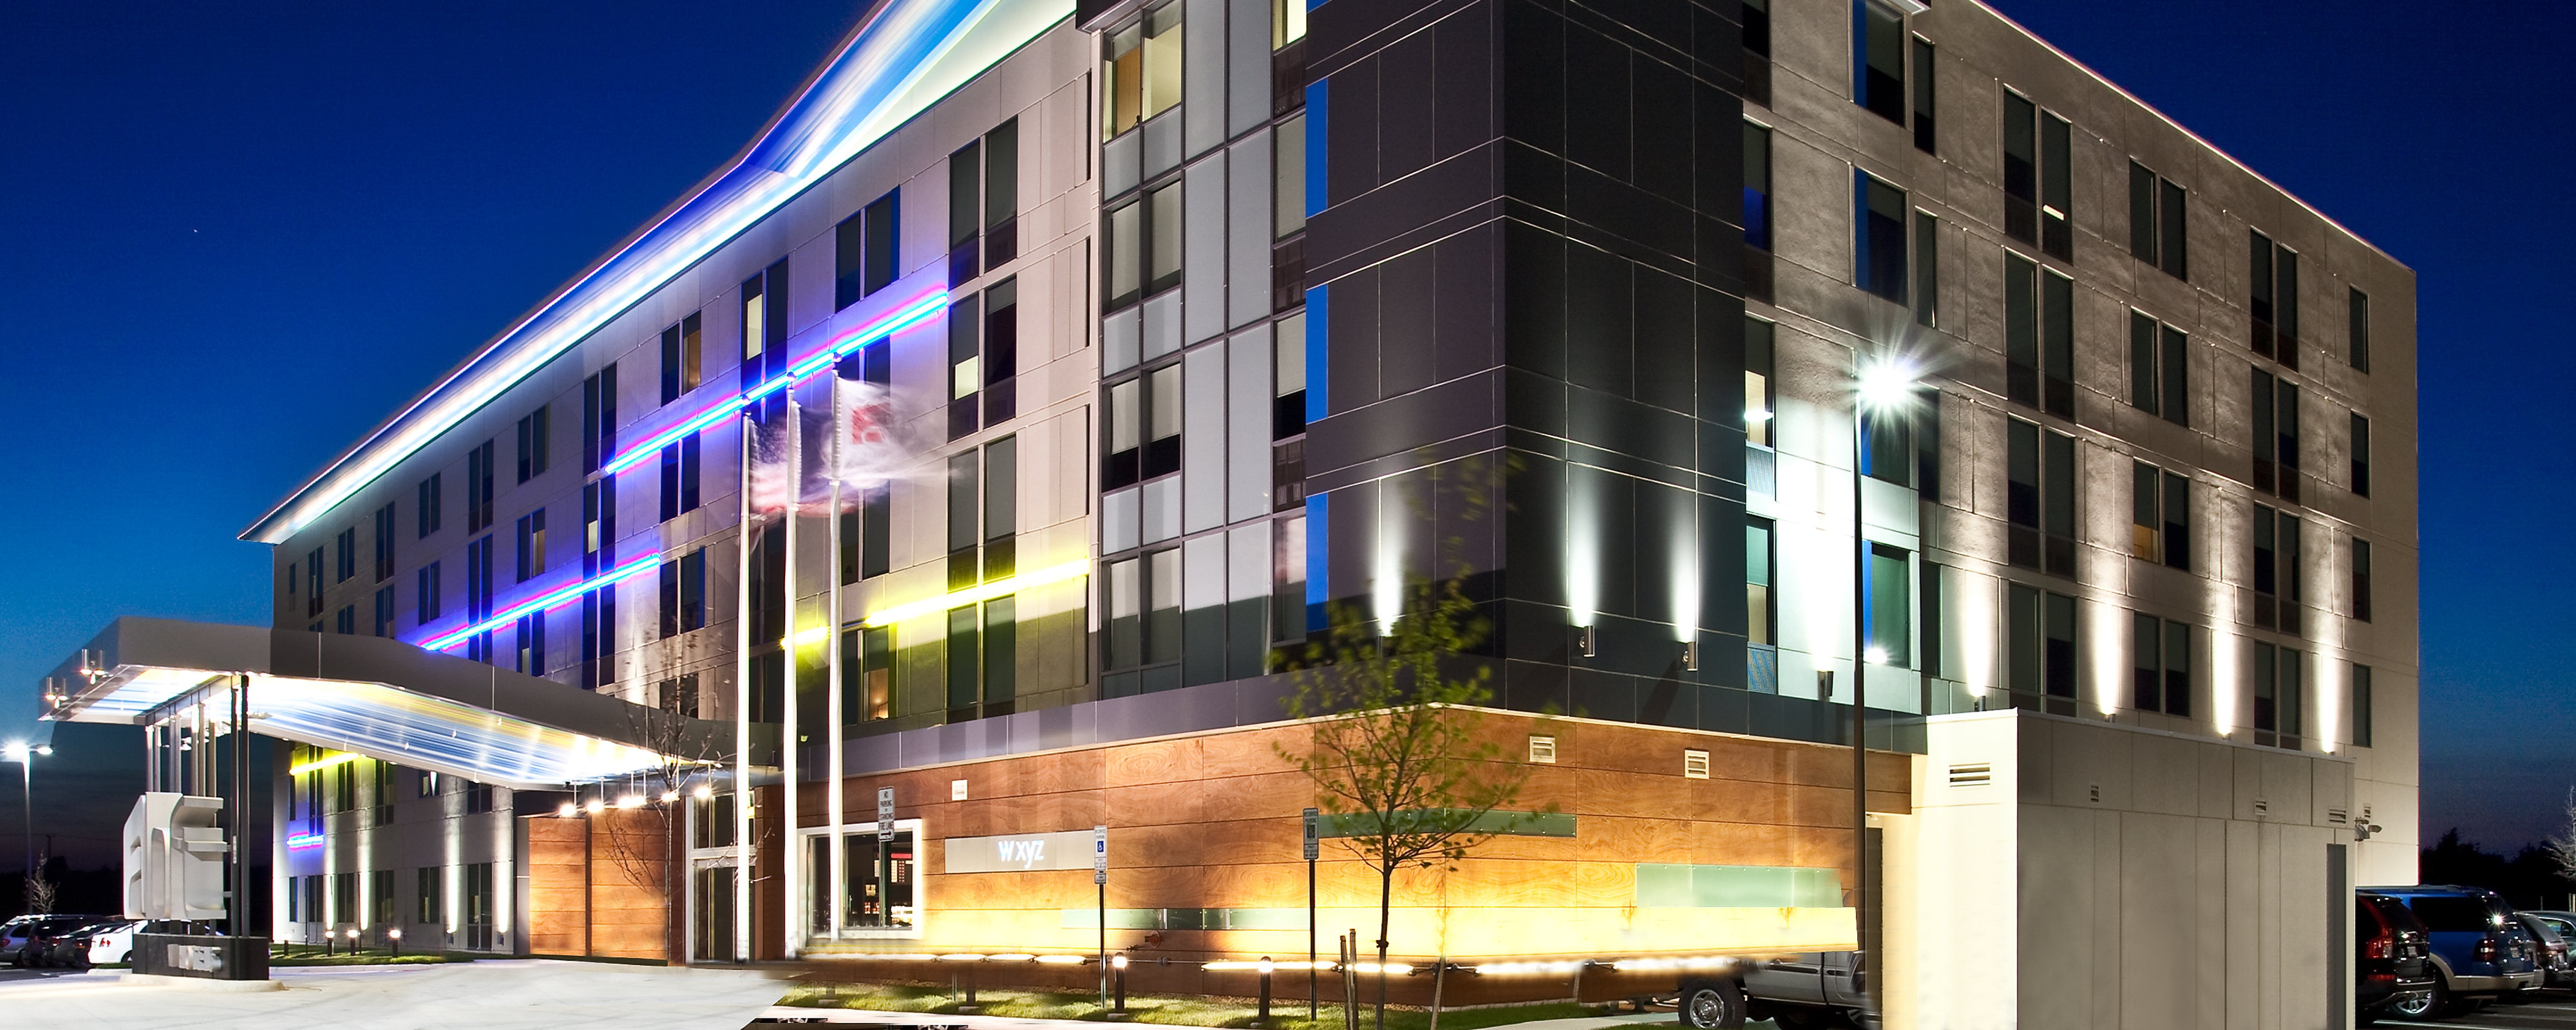 Dulles International Airport Hotels In